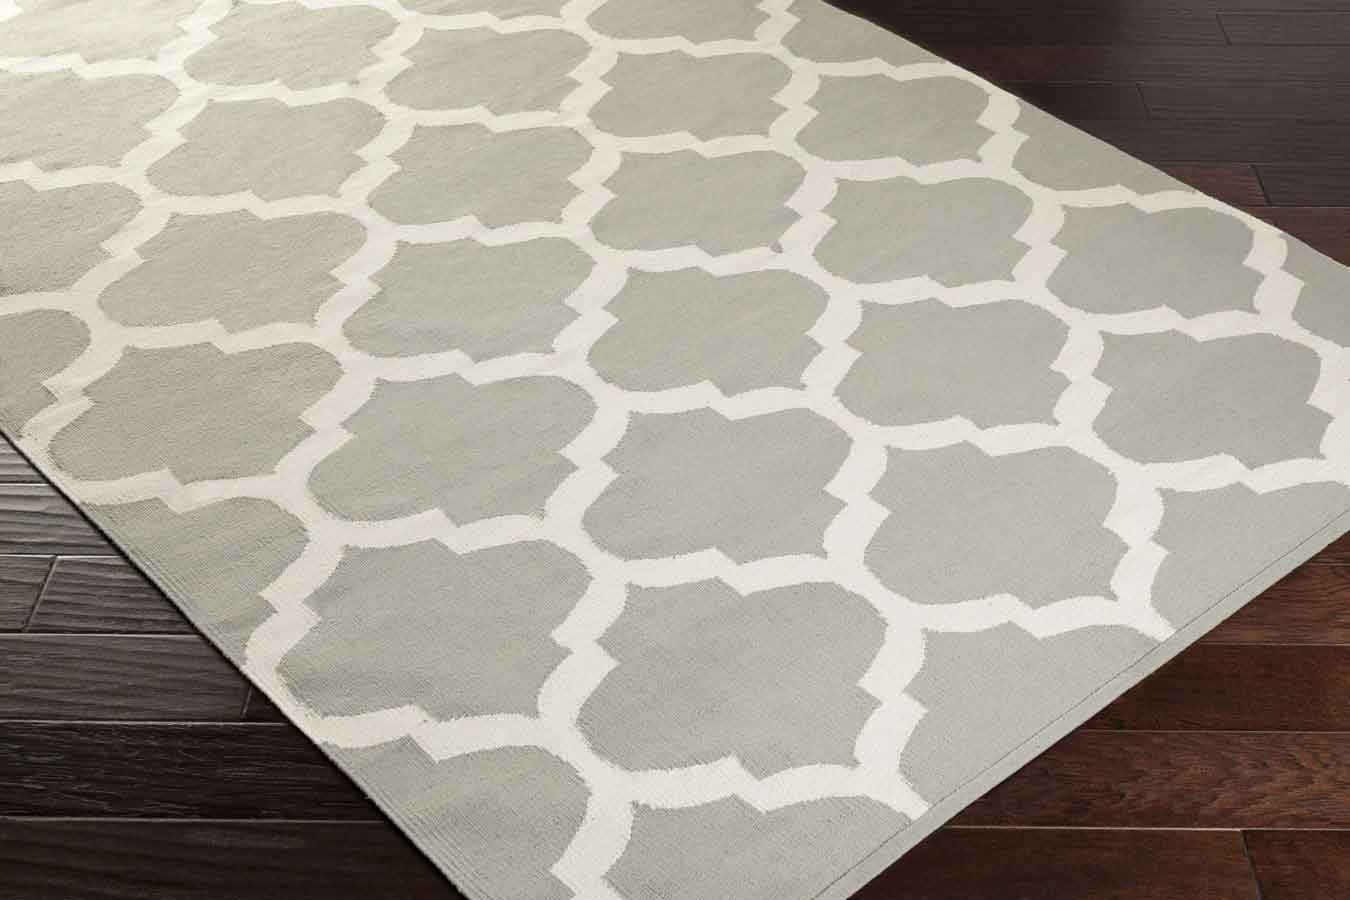 artistic weavers vogue everly awlt3004 grey white area rug payless rugs vogue collection by. Black Bedroom Furniture Sets. Home Design Ideas